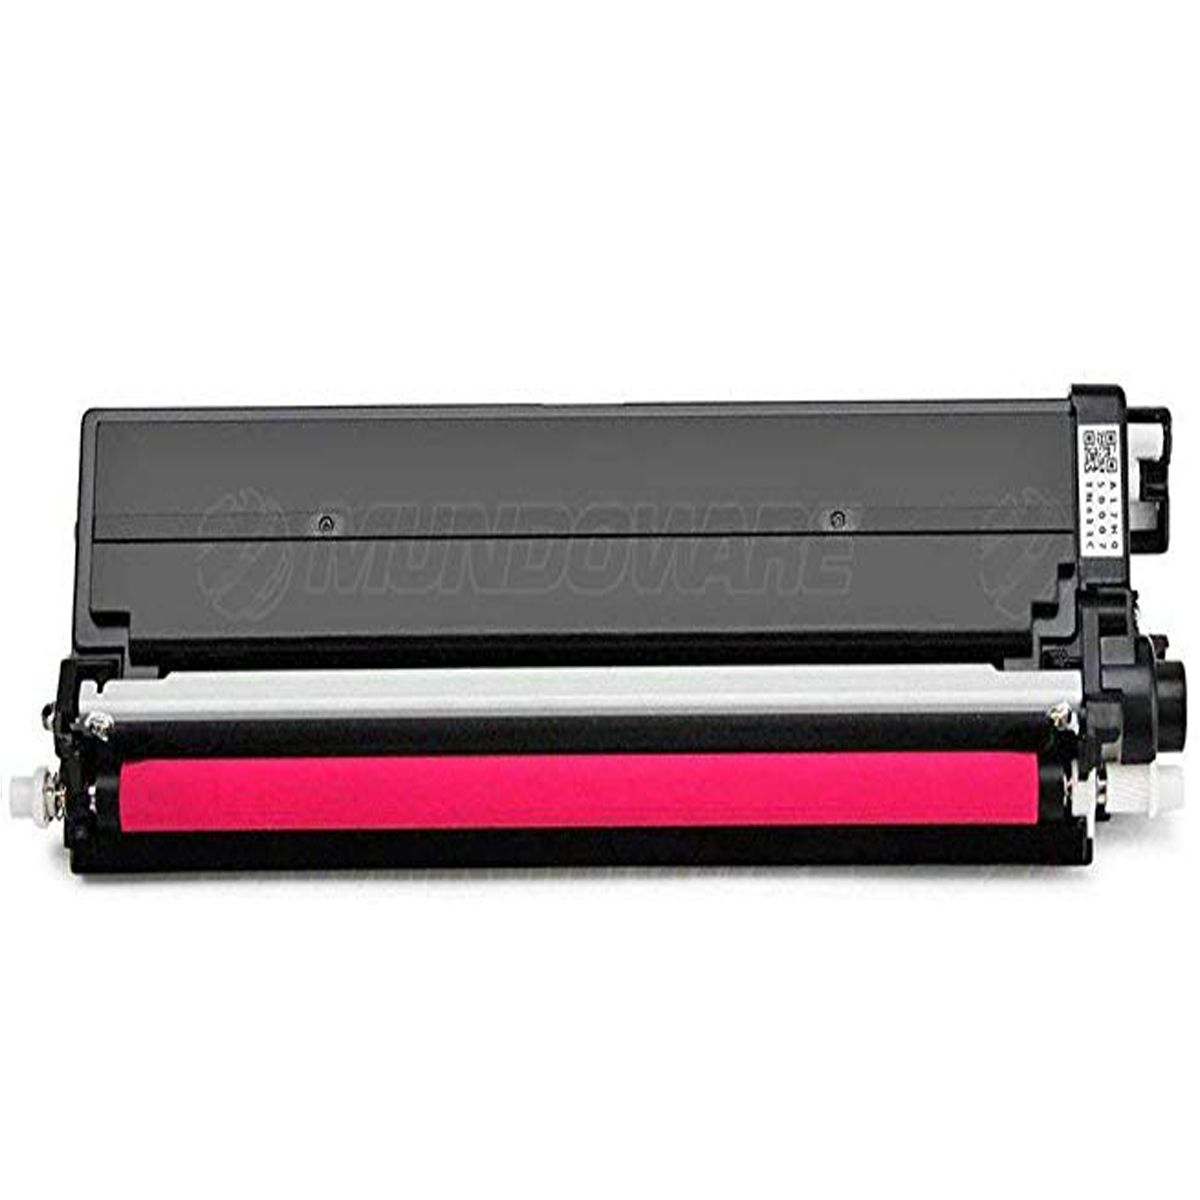 Toner Brother TN419 TN411 TN413 TN421 TN431 TN441 TN451 TN461 TN491 - Magenta Compativel